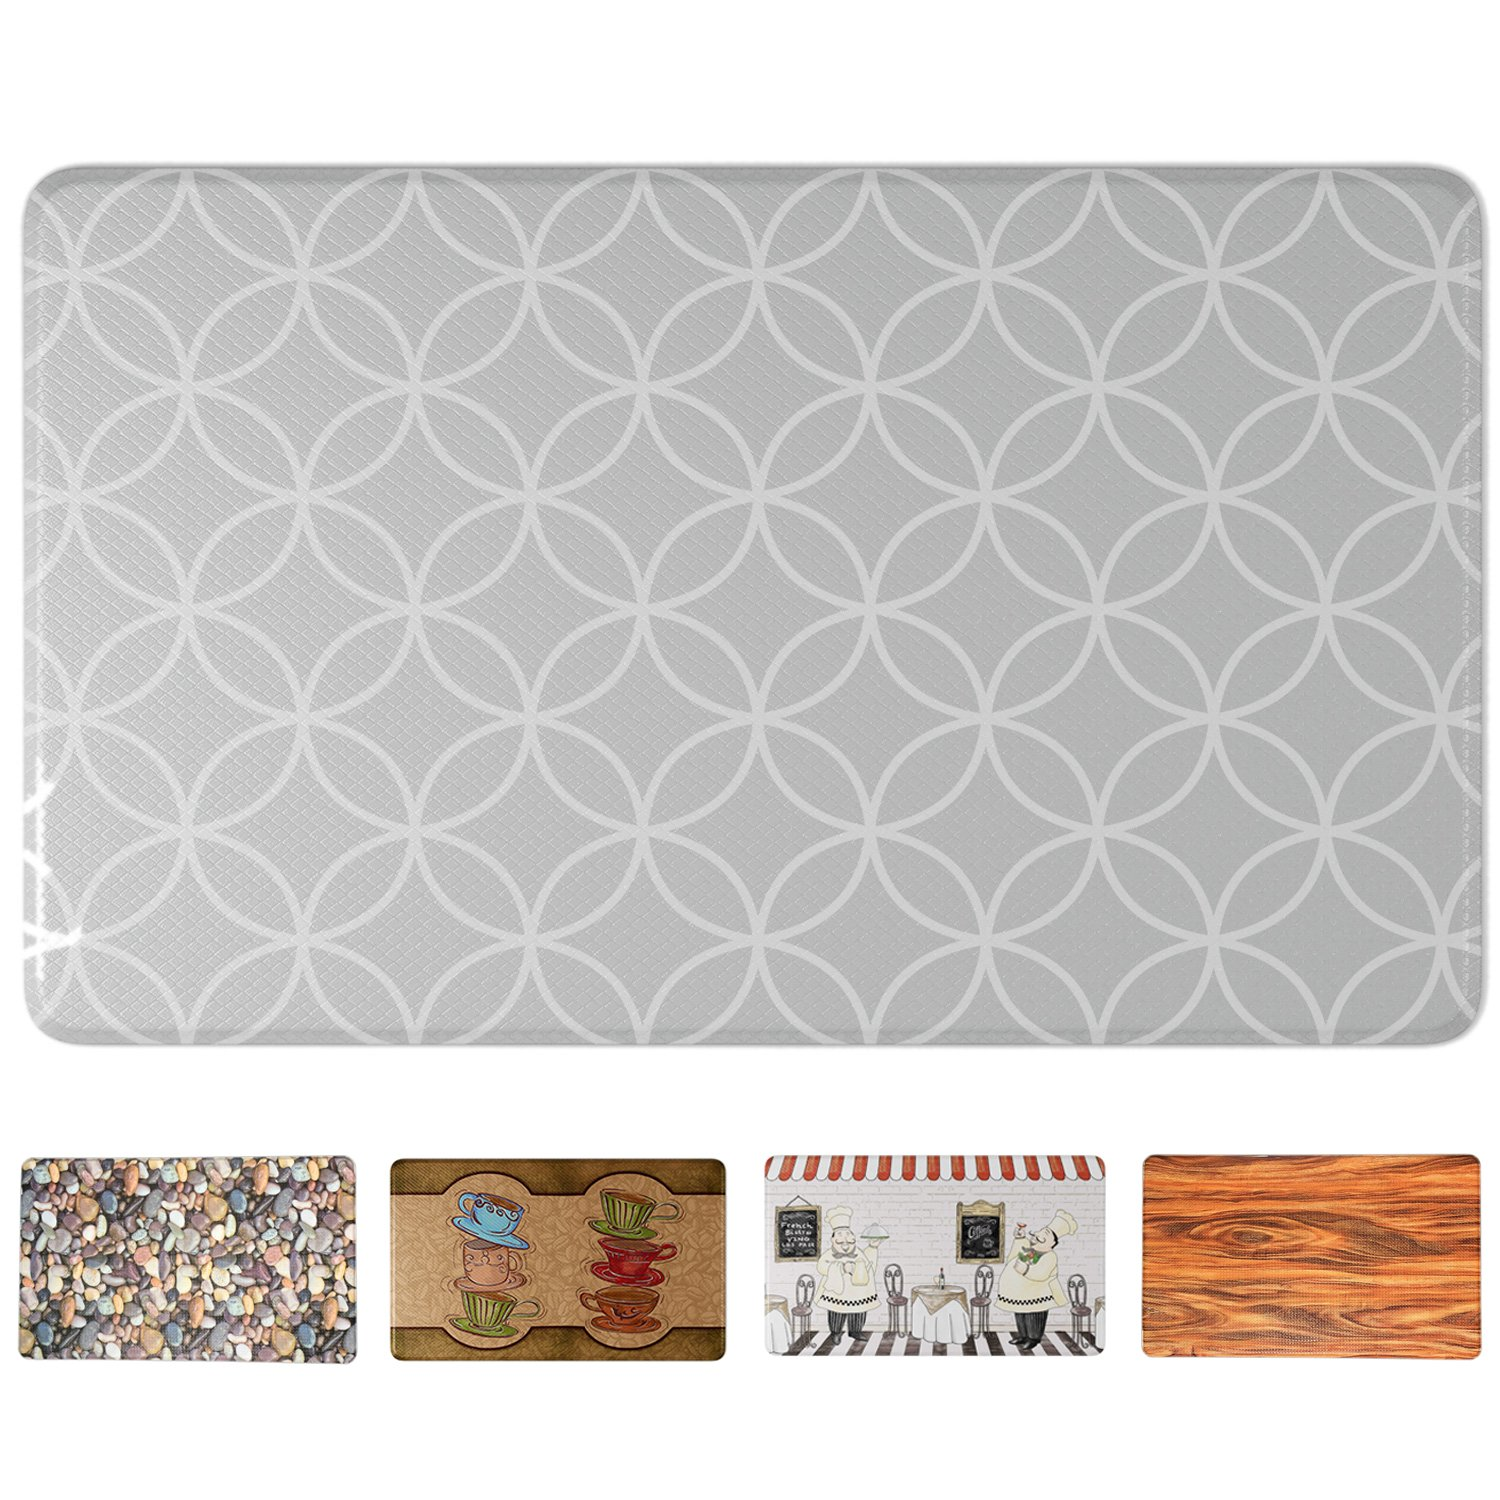 Art3d Premium Kitchen/Office Comfort Standing Mat Comfort Kitchen Rug, 18'' W X 30'' L